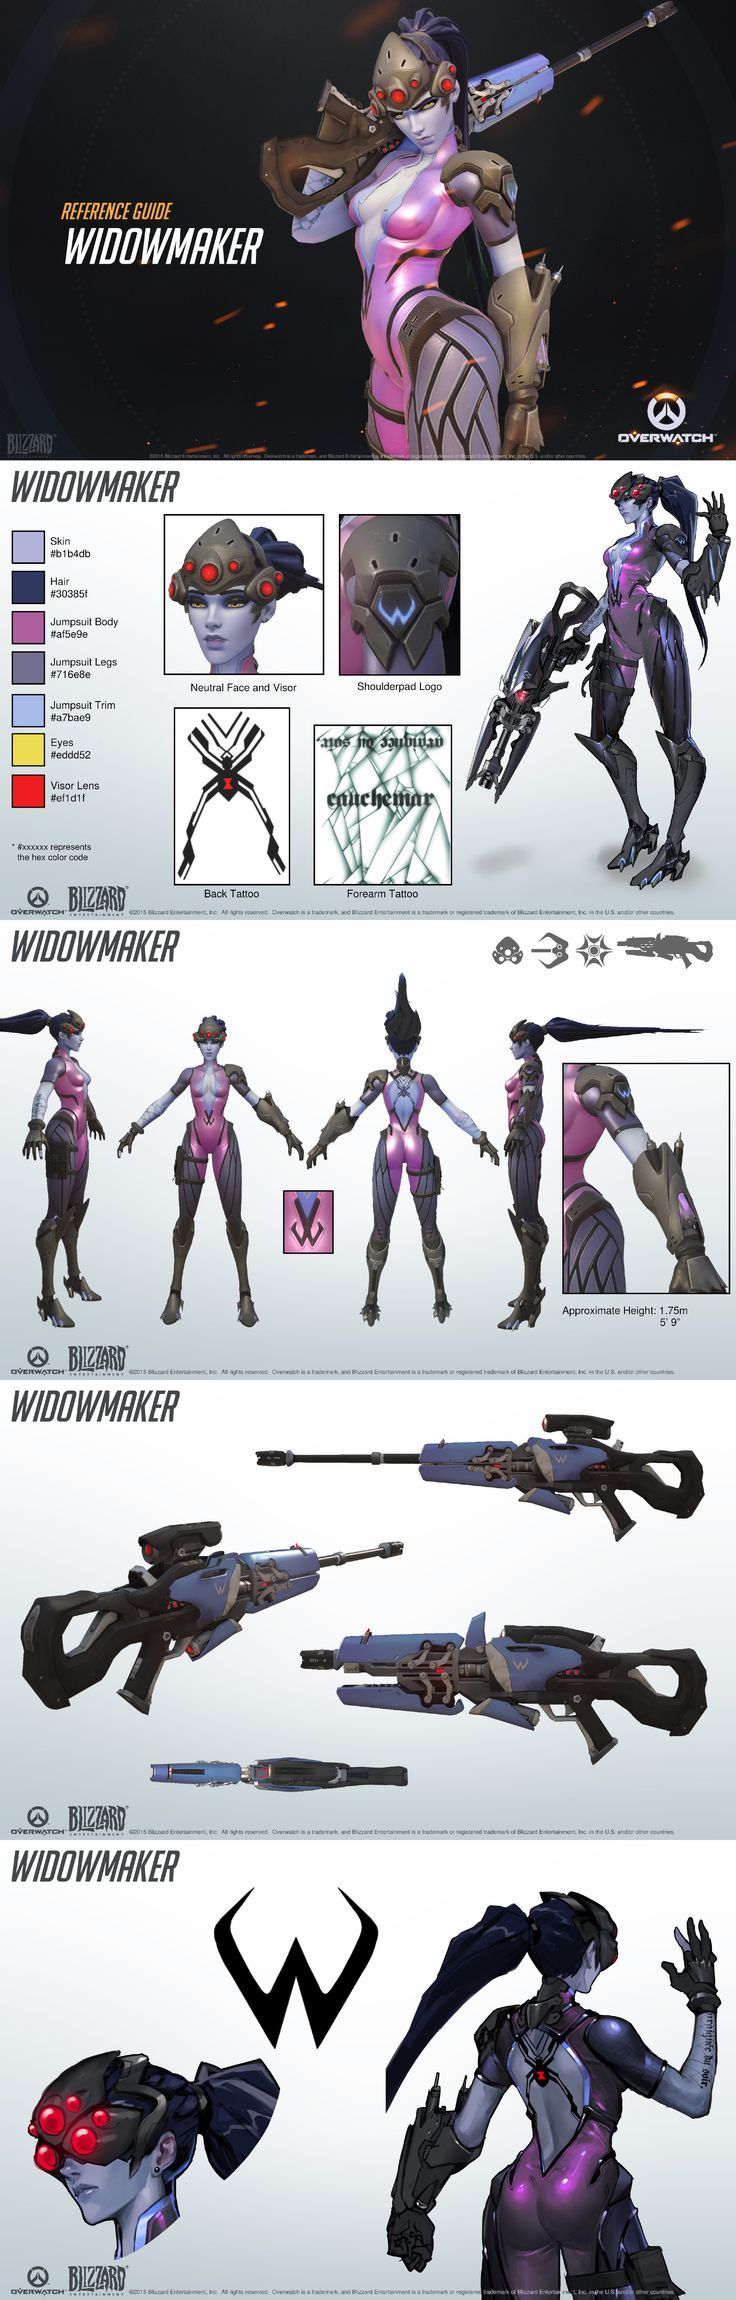 Character Design Overwatch : Overwatch widow maker reference guide weapon